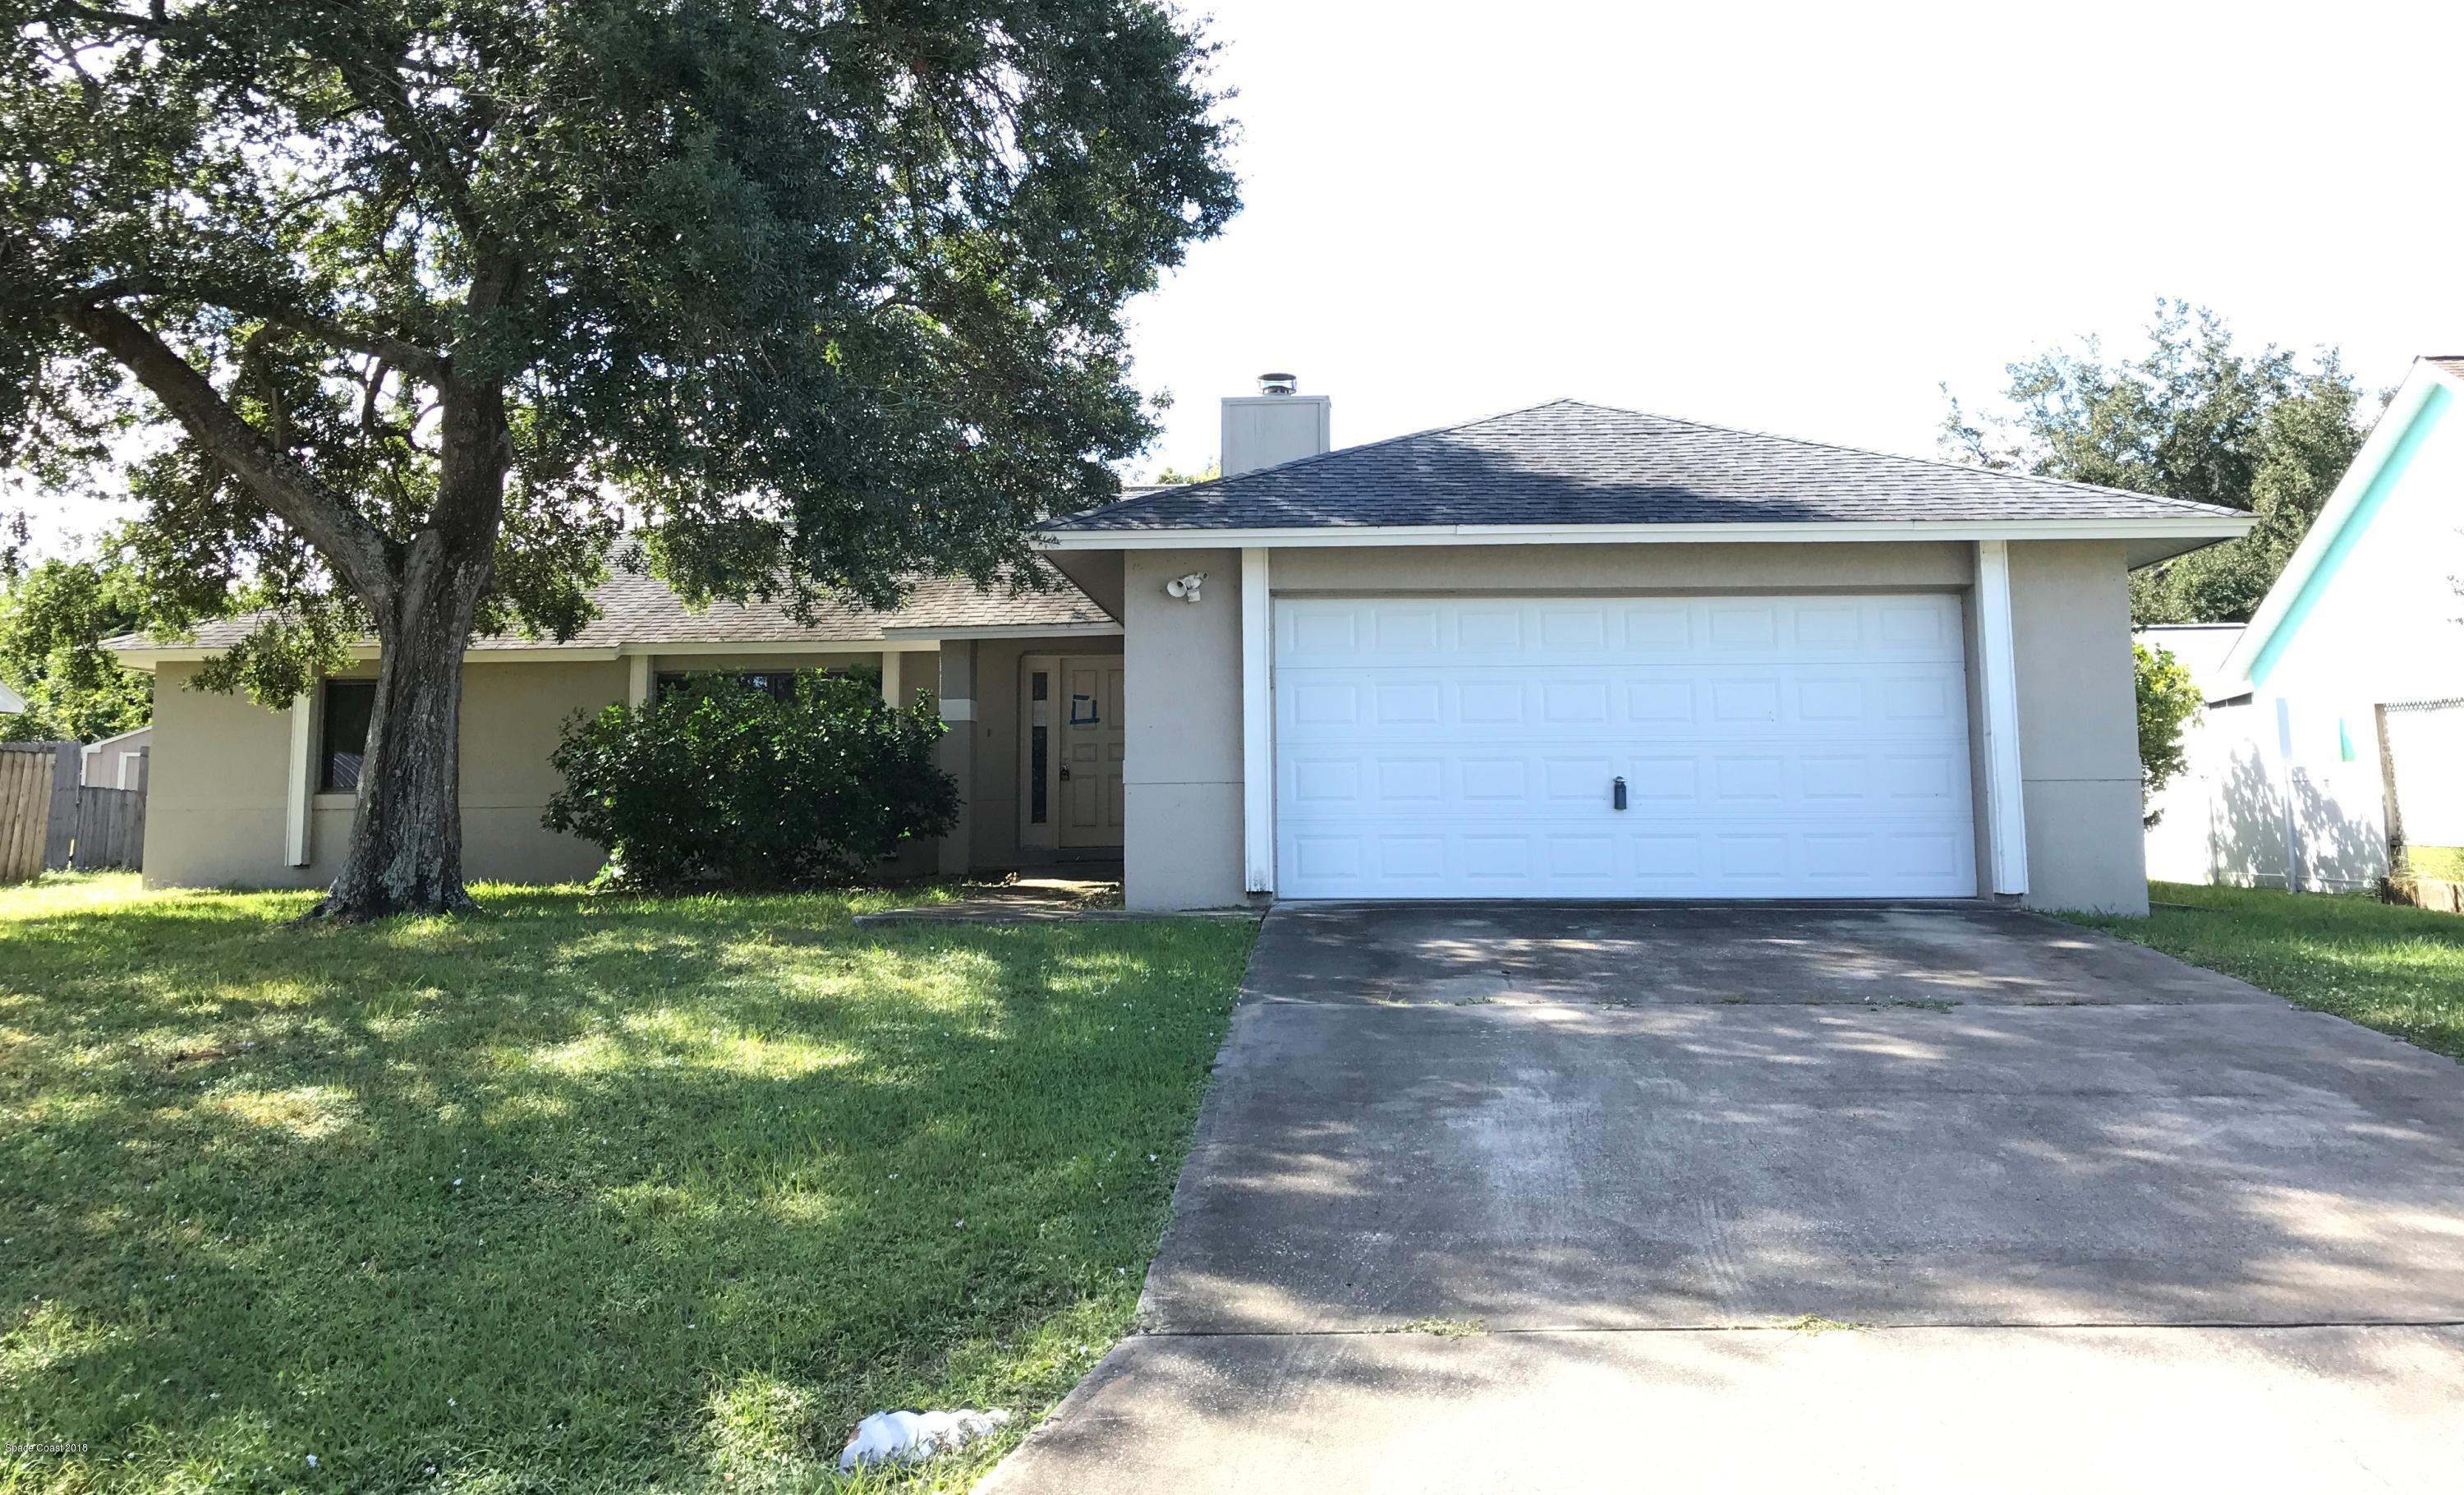 3 bed / 3 baths Home in Palm Bay for $175,000